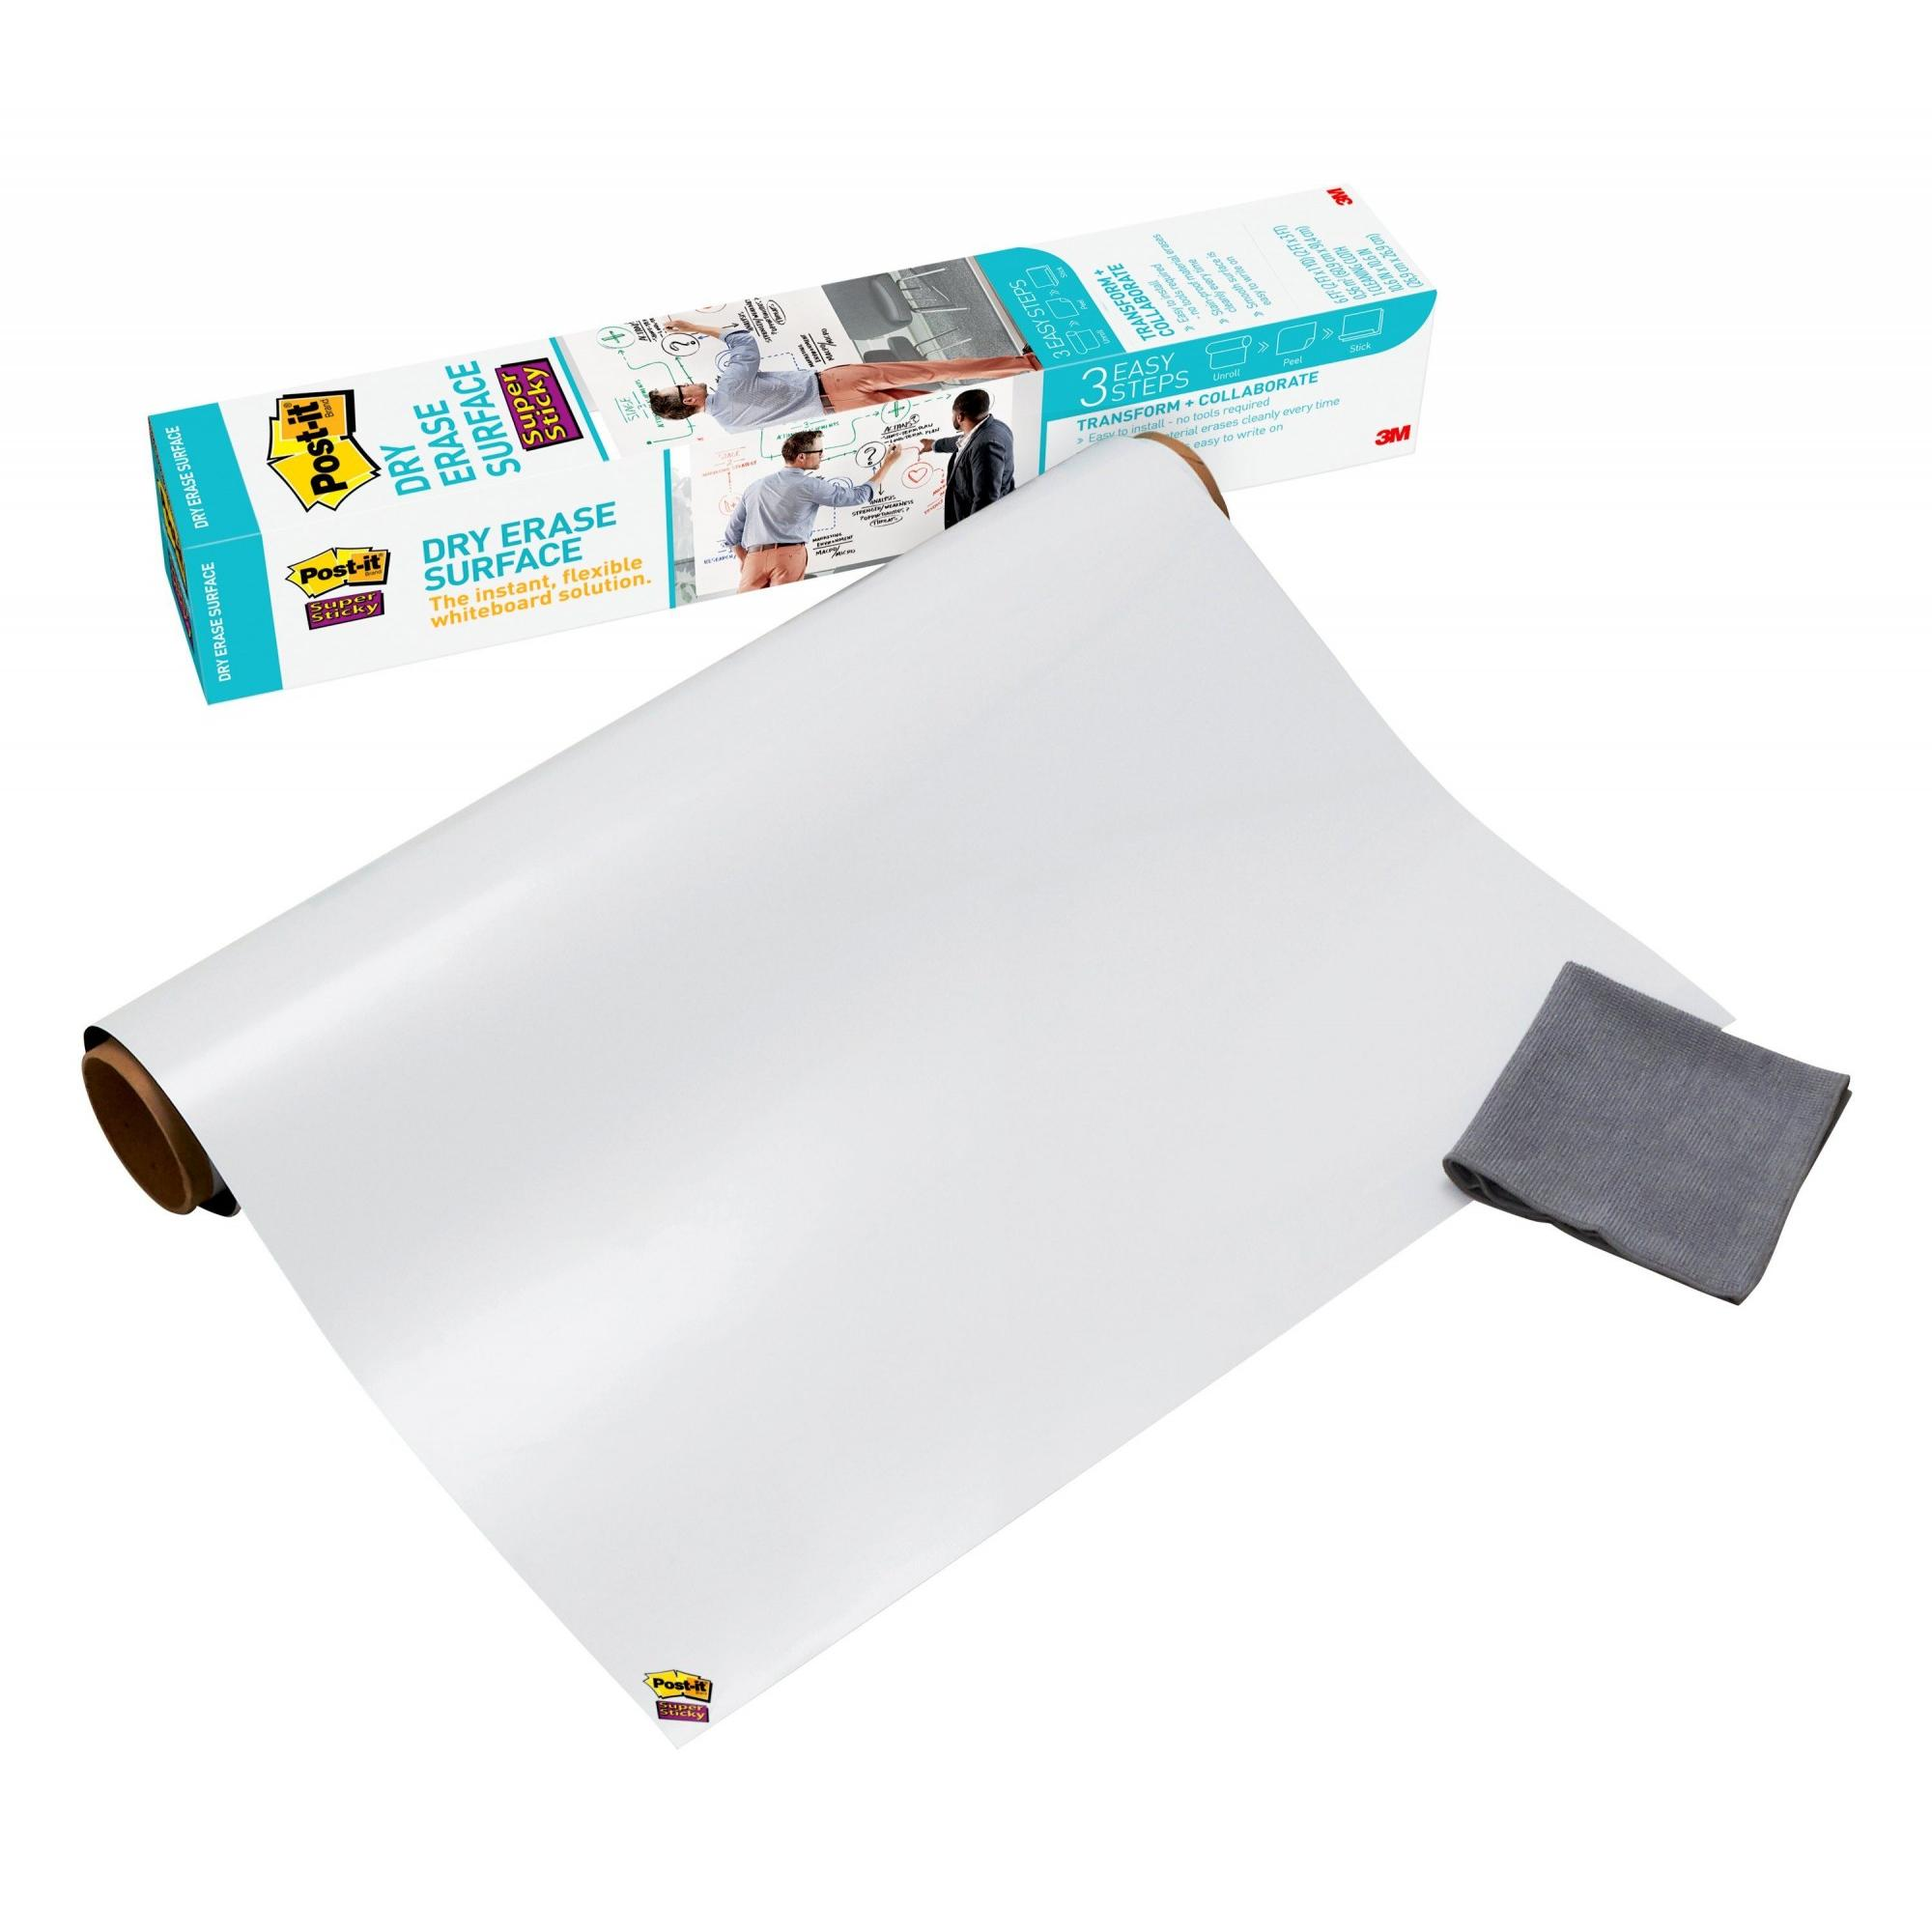 Post-it Super Sticky Self-Stick Dry Erase Film Surface, White, 3 x 2-Ft, 6 Sq Ft.